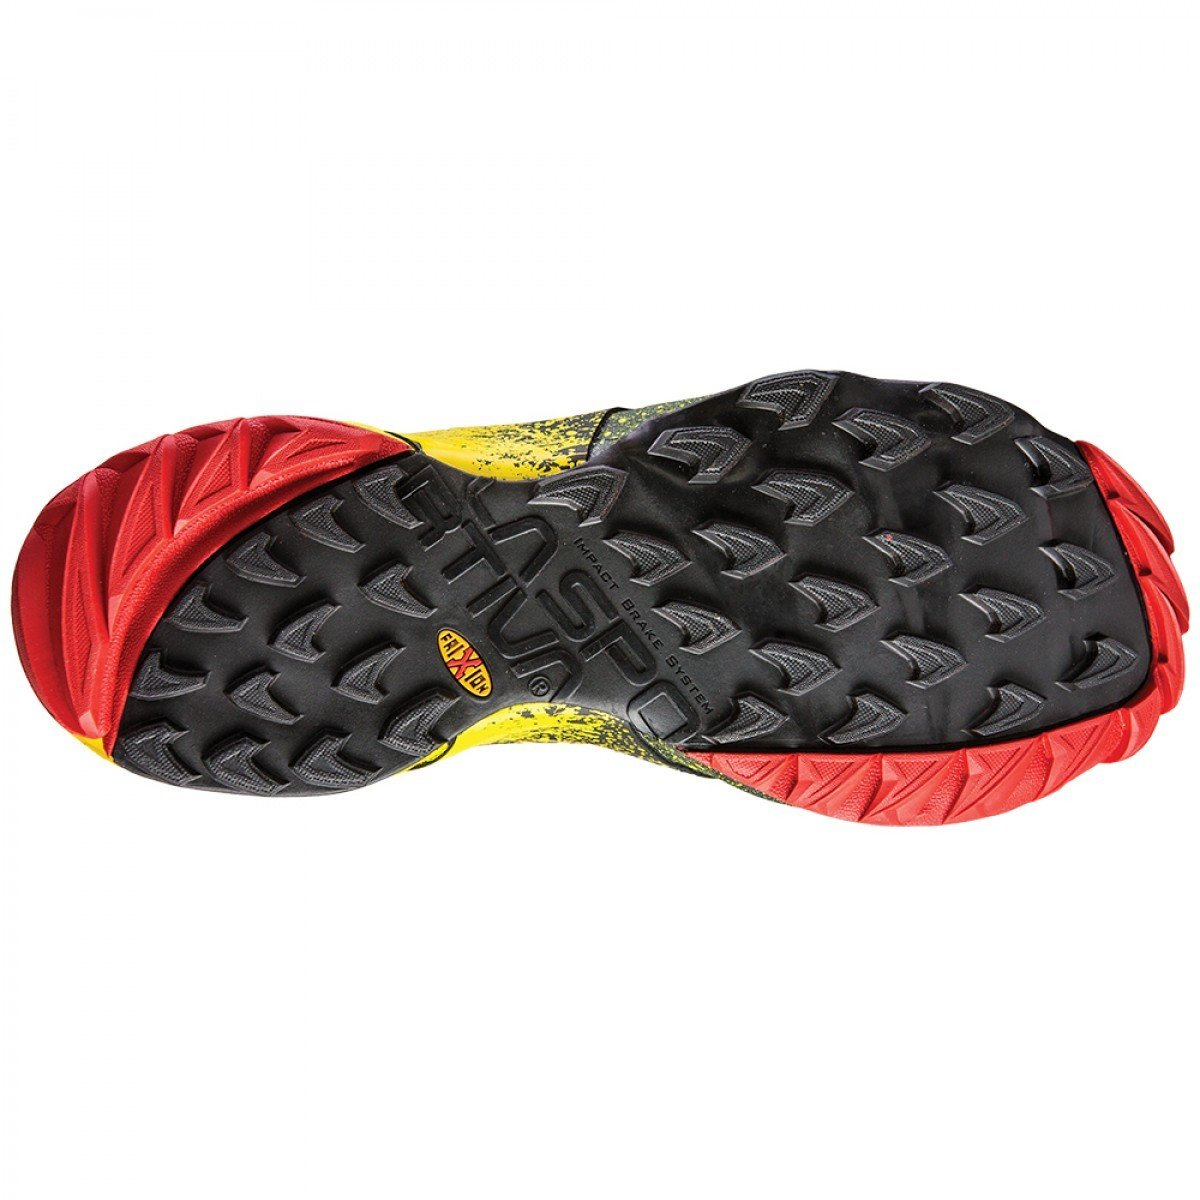 La Sportiva Akasha, view of the sole